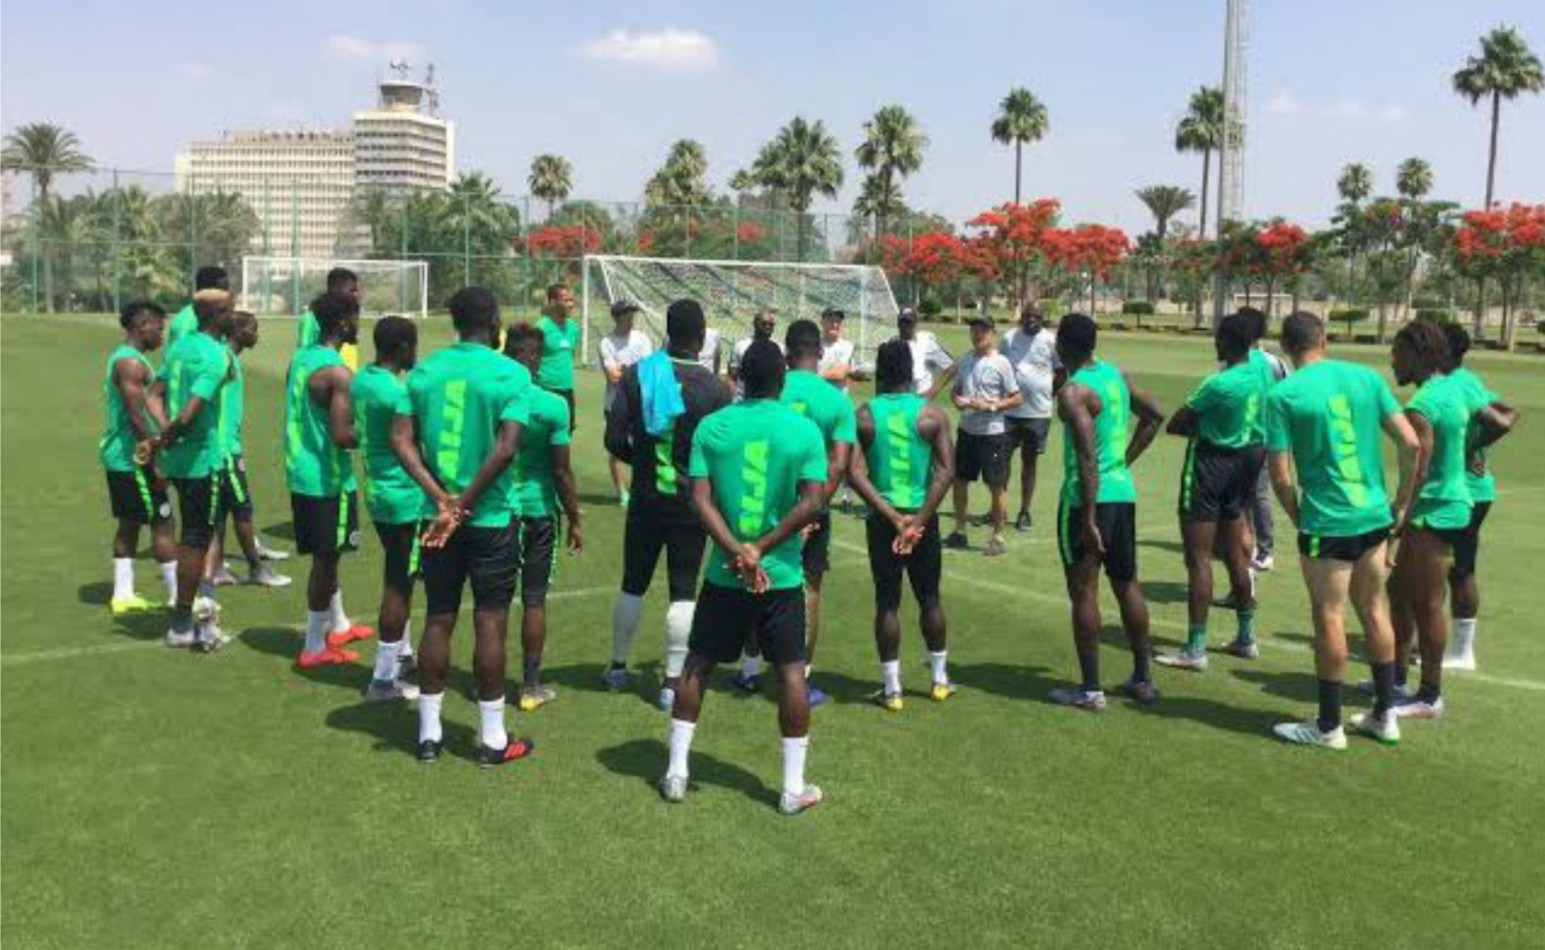 EndSARS: John Ogu wants Super Eagles to boycott AFCON Qualifier, says there's no point representing Nigeria